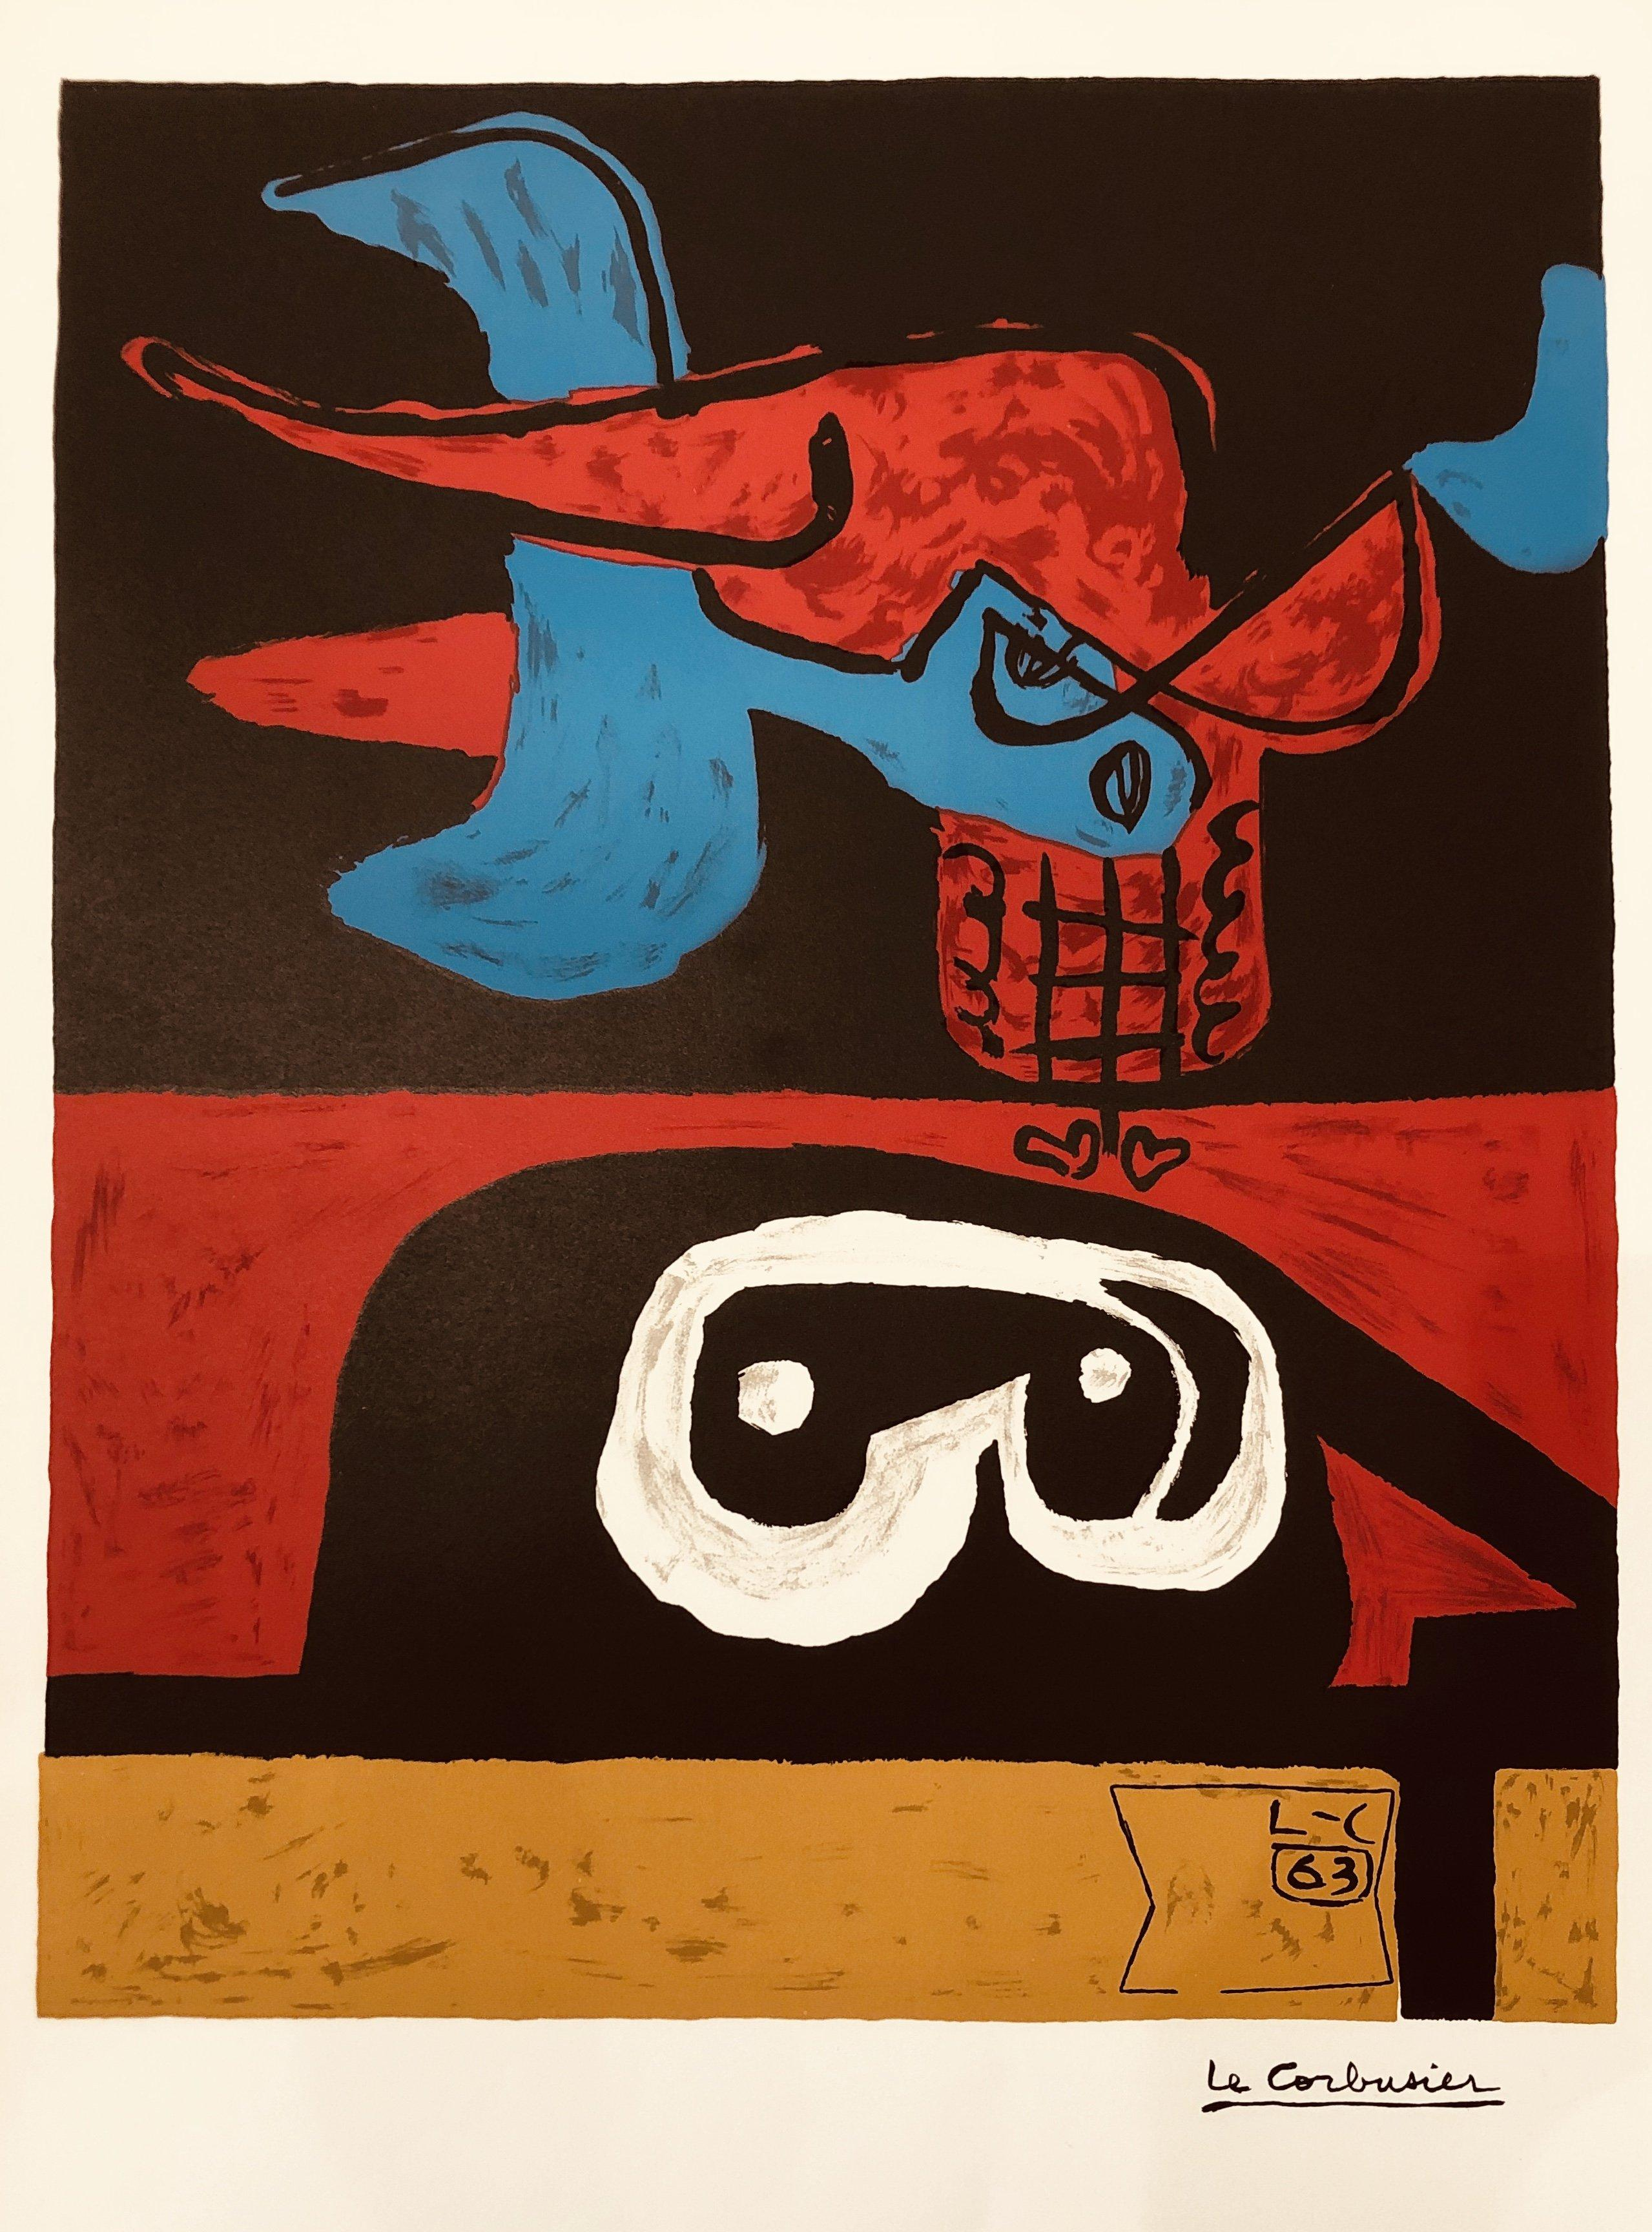 Otherworldly by Le Corbusier (1963) - modern lithograph